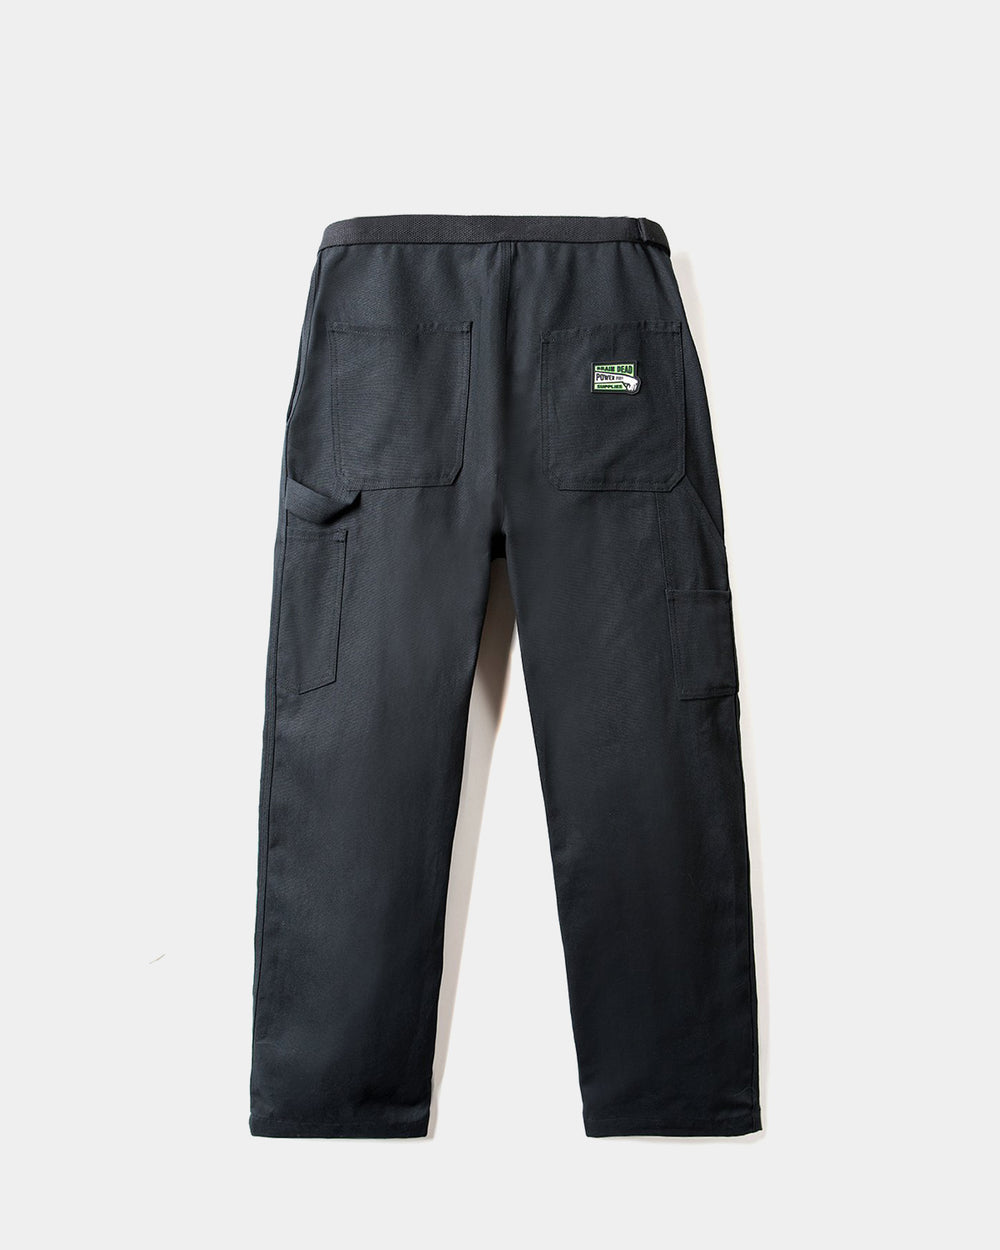 Brain Dead - Canvas Carpenter Pant (Black)